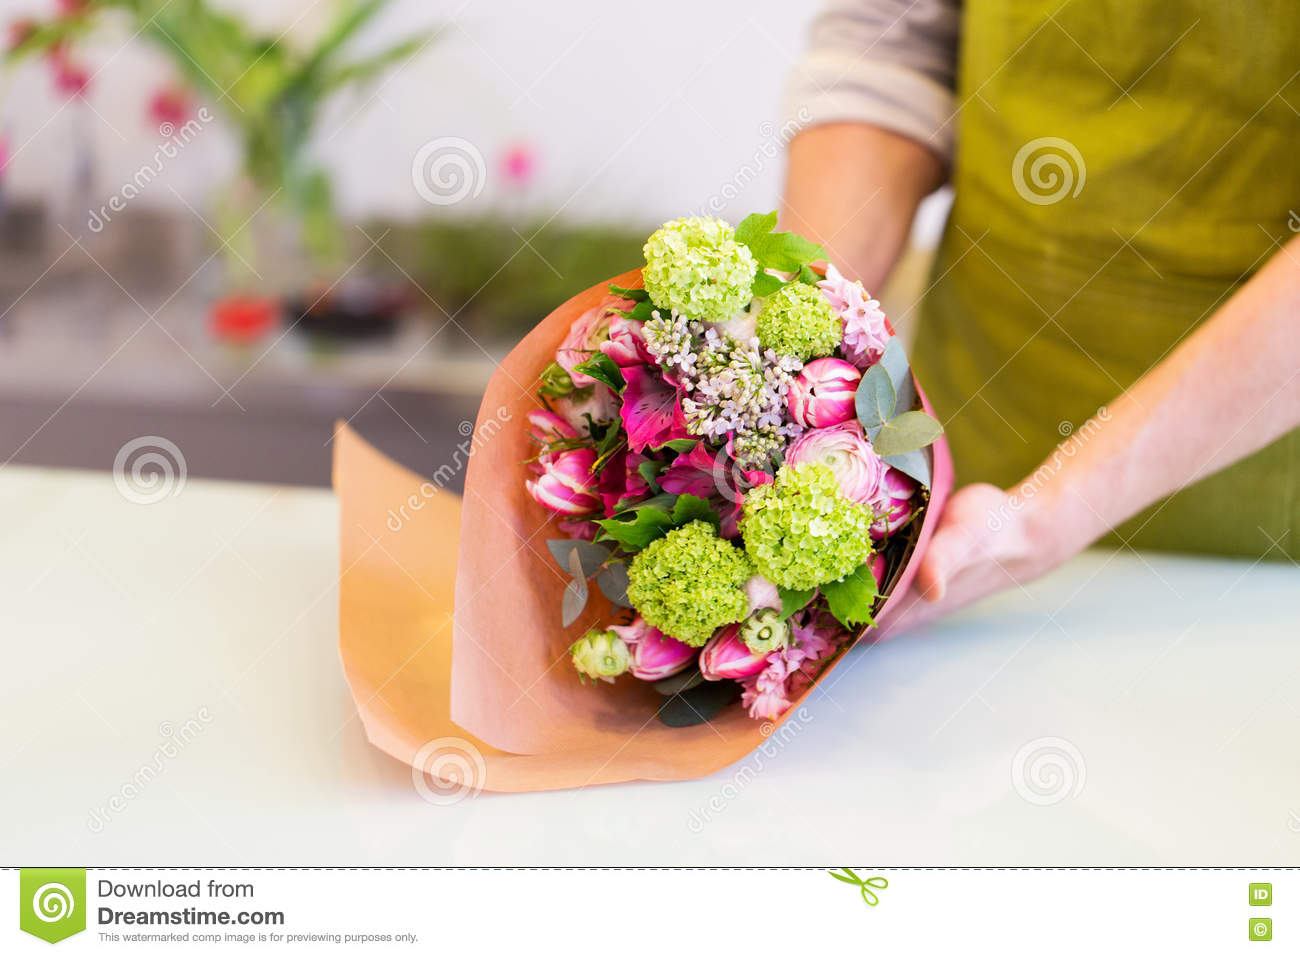 Florist wrapping flowers in paper at flower shop stock image image download comp mightylinksfo